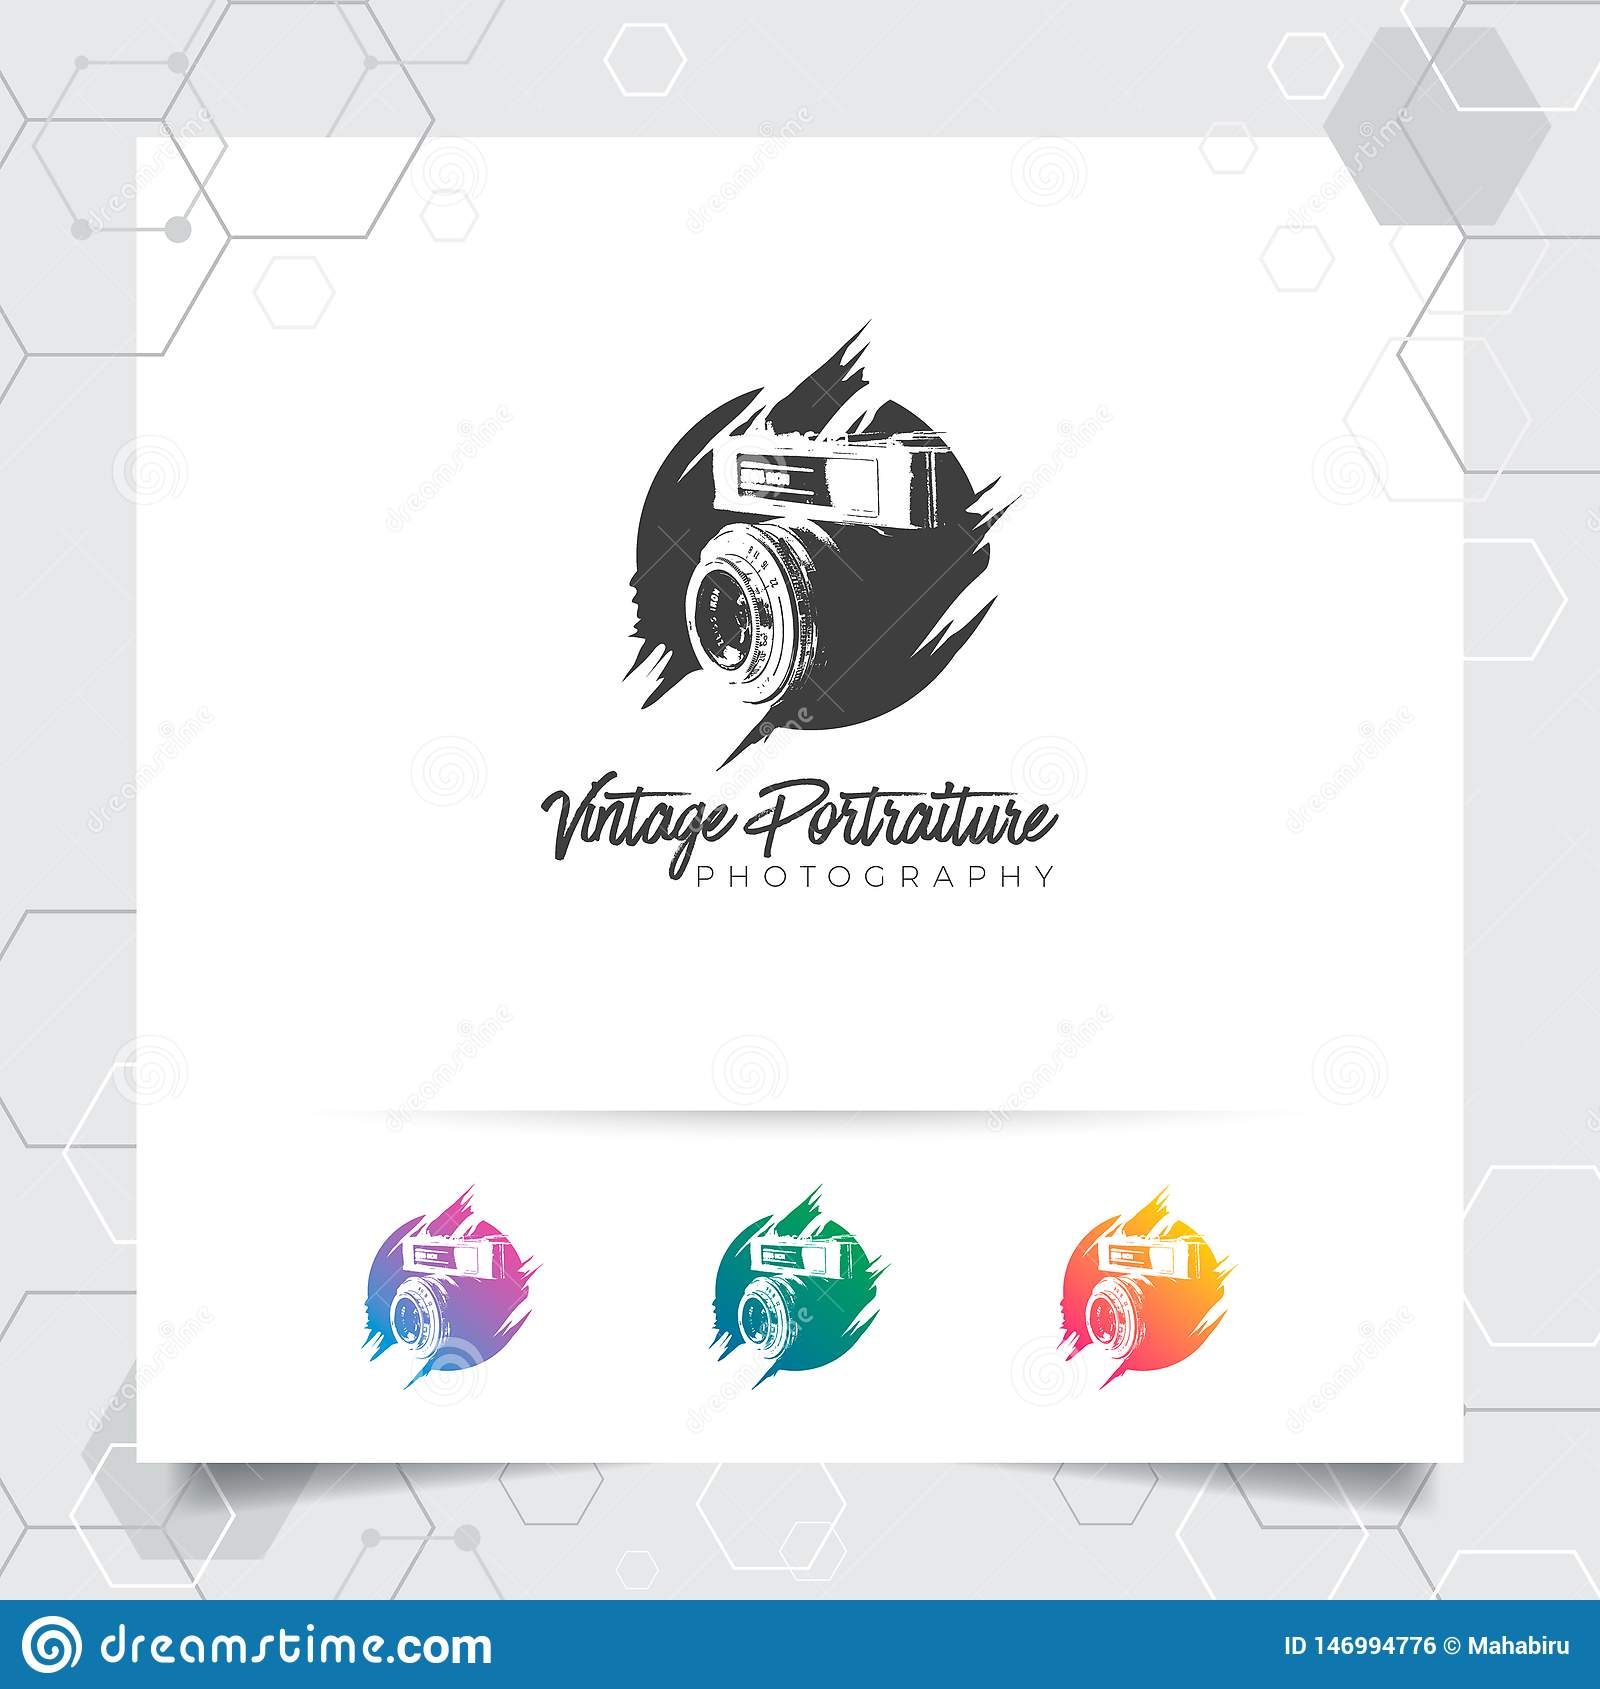 Silhouette Photography Logo Design With Concept Of Vintage Camera Lens Icon And Photo Vector For Photographer Studio Photo And Stock Vector Illustration Of Flash Concept 146994776